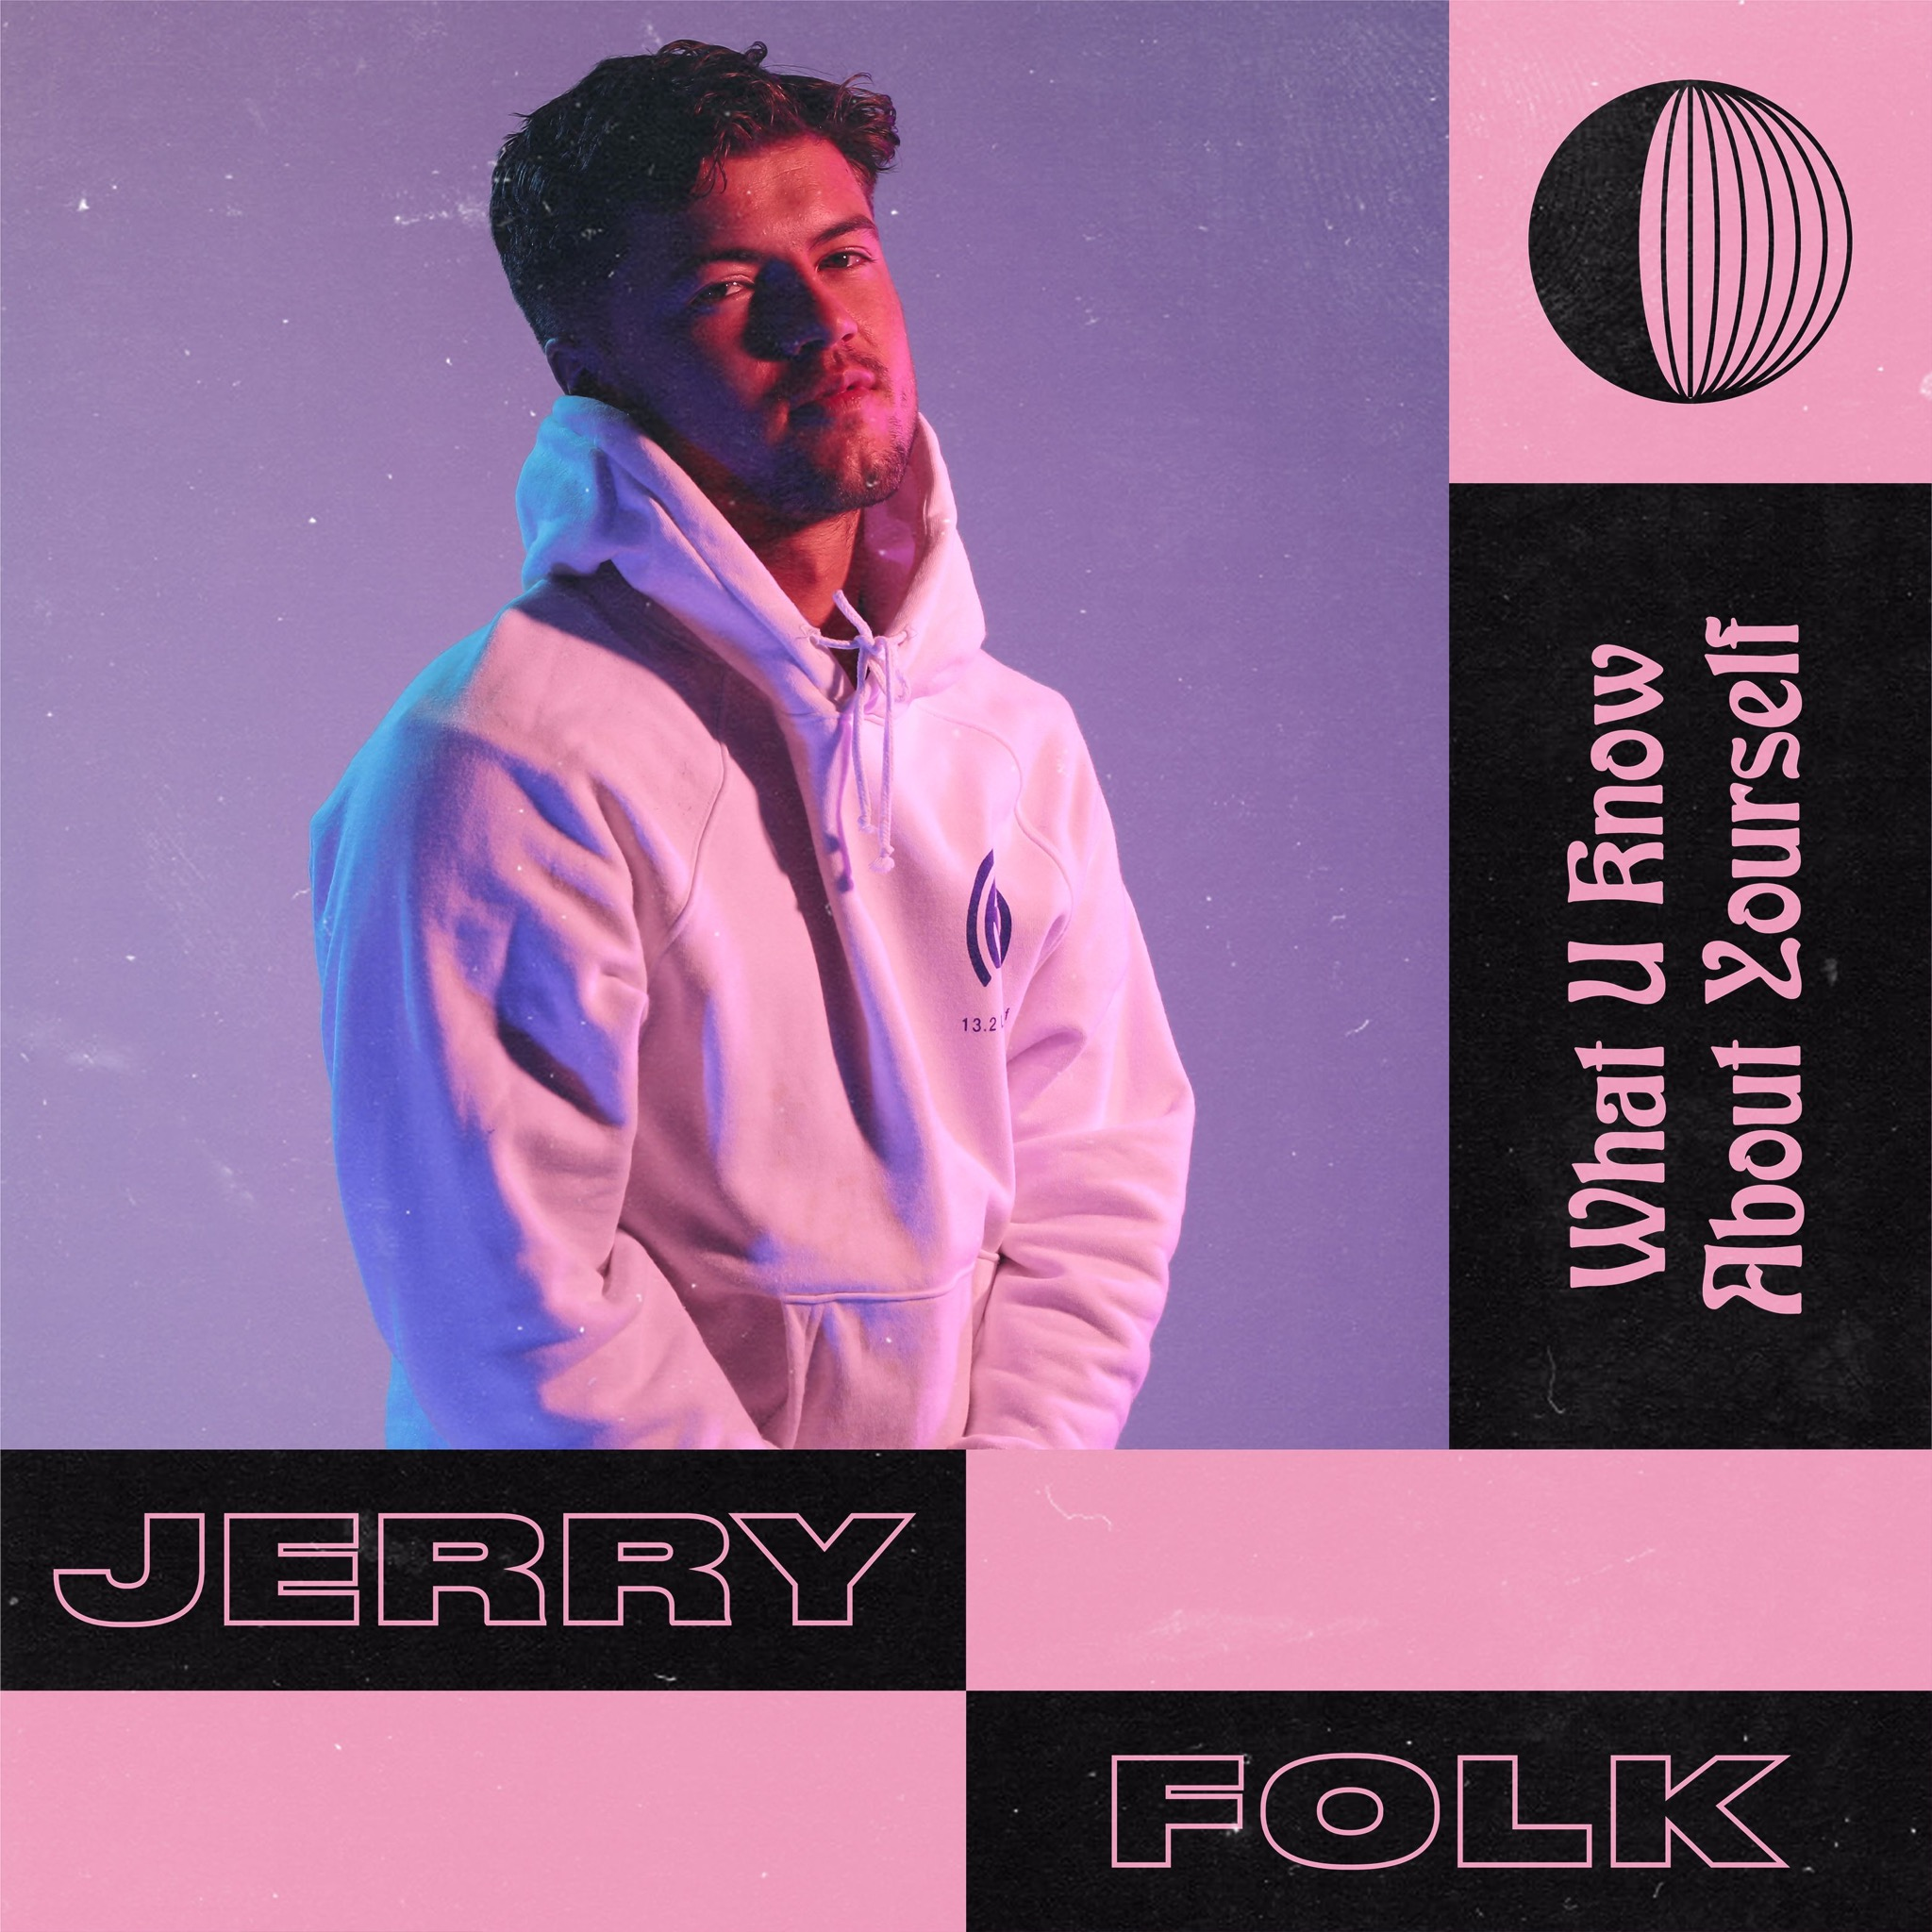 Jerry Folk What U Know About Yourself Artwork